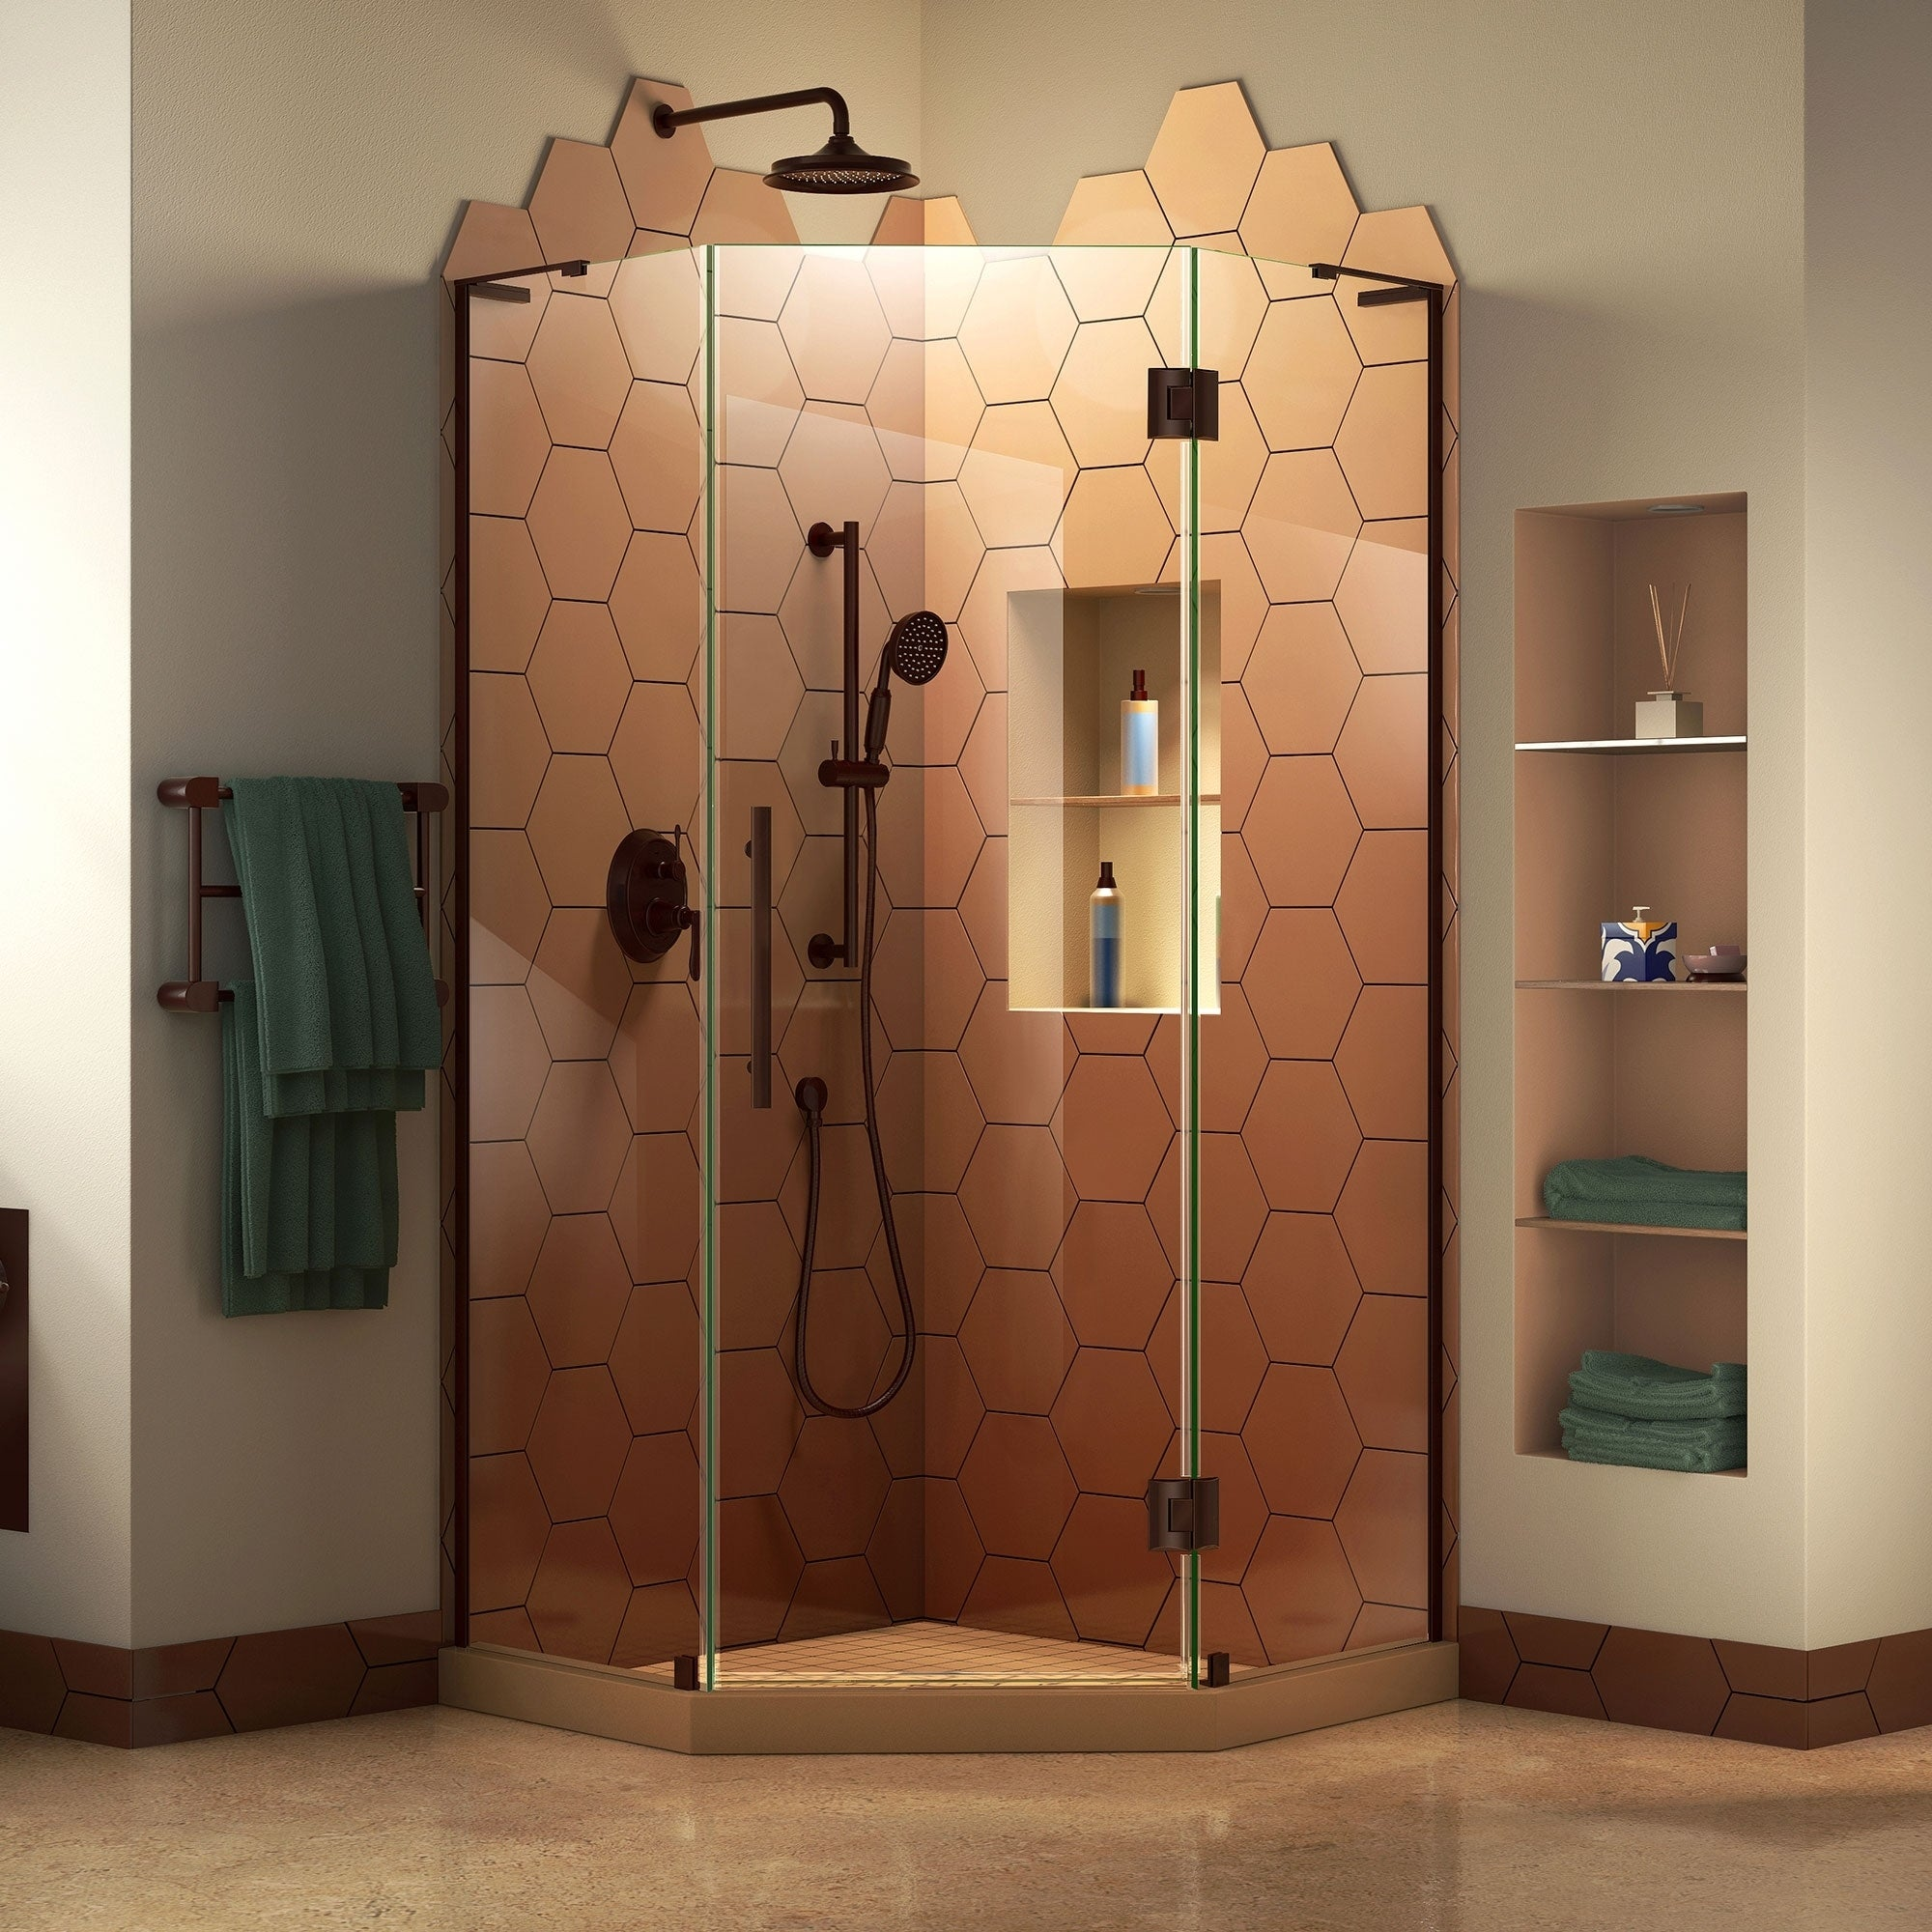 Dreamline Prism Plus 34 In X 34 In X 72 In Frameless Hinged Shower Enclosure 34 X 34